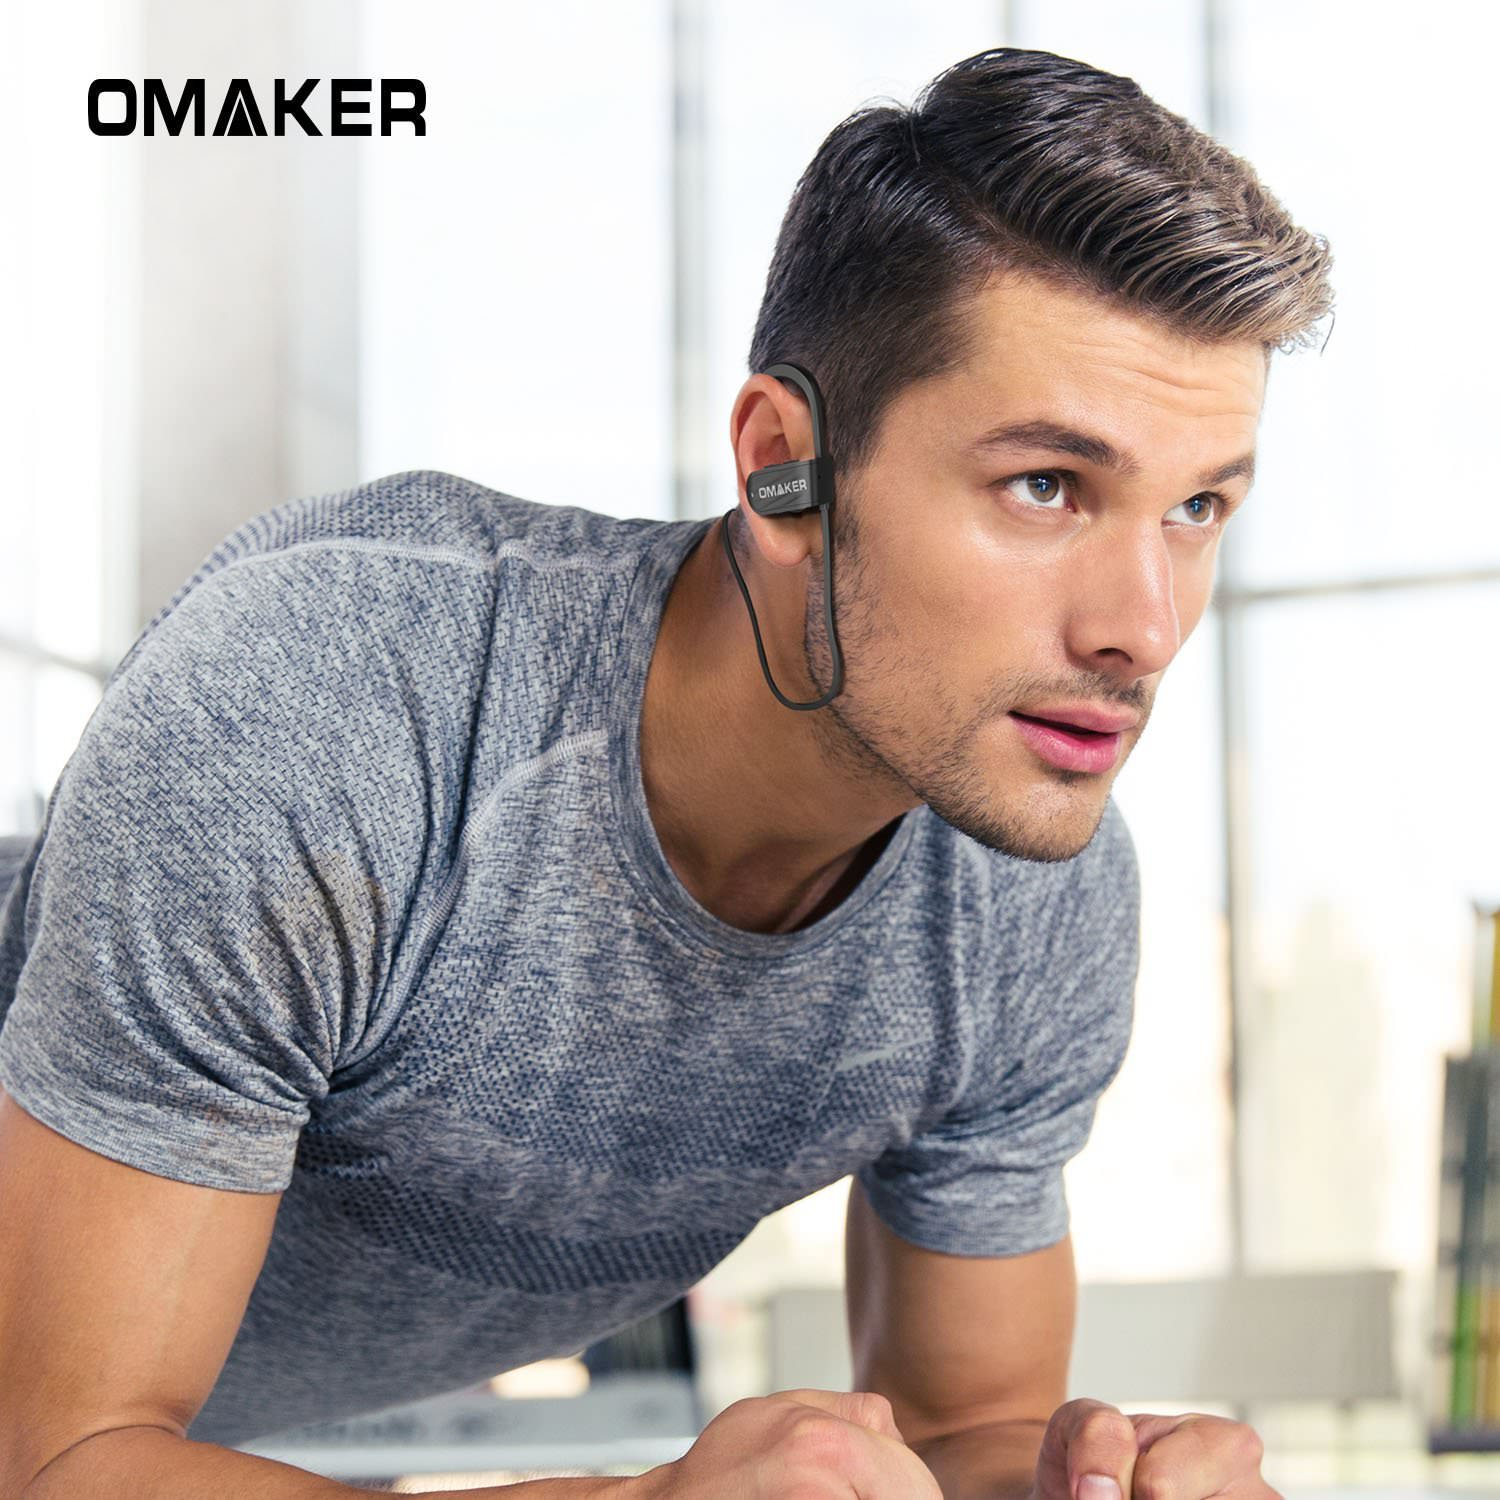 omaker-wirelessheadphone2